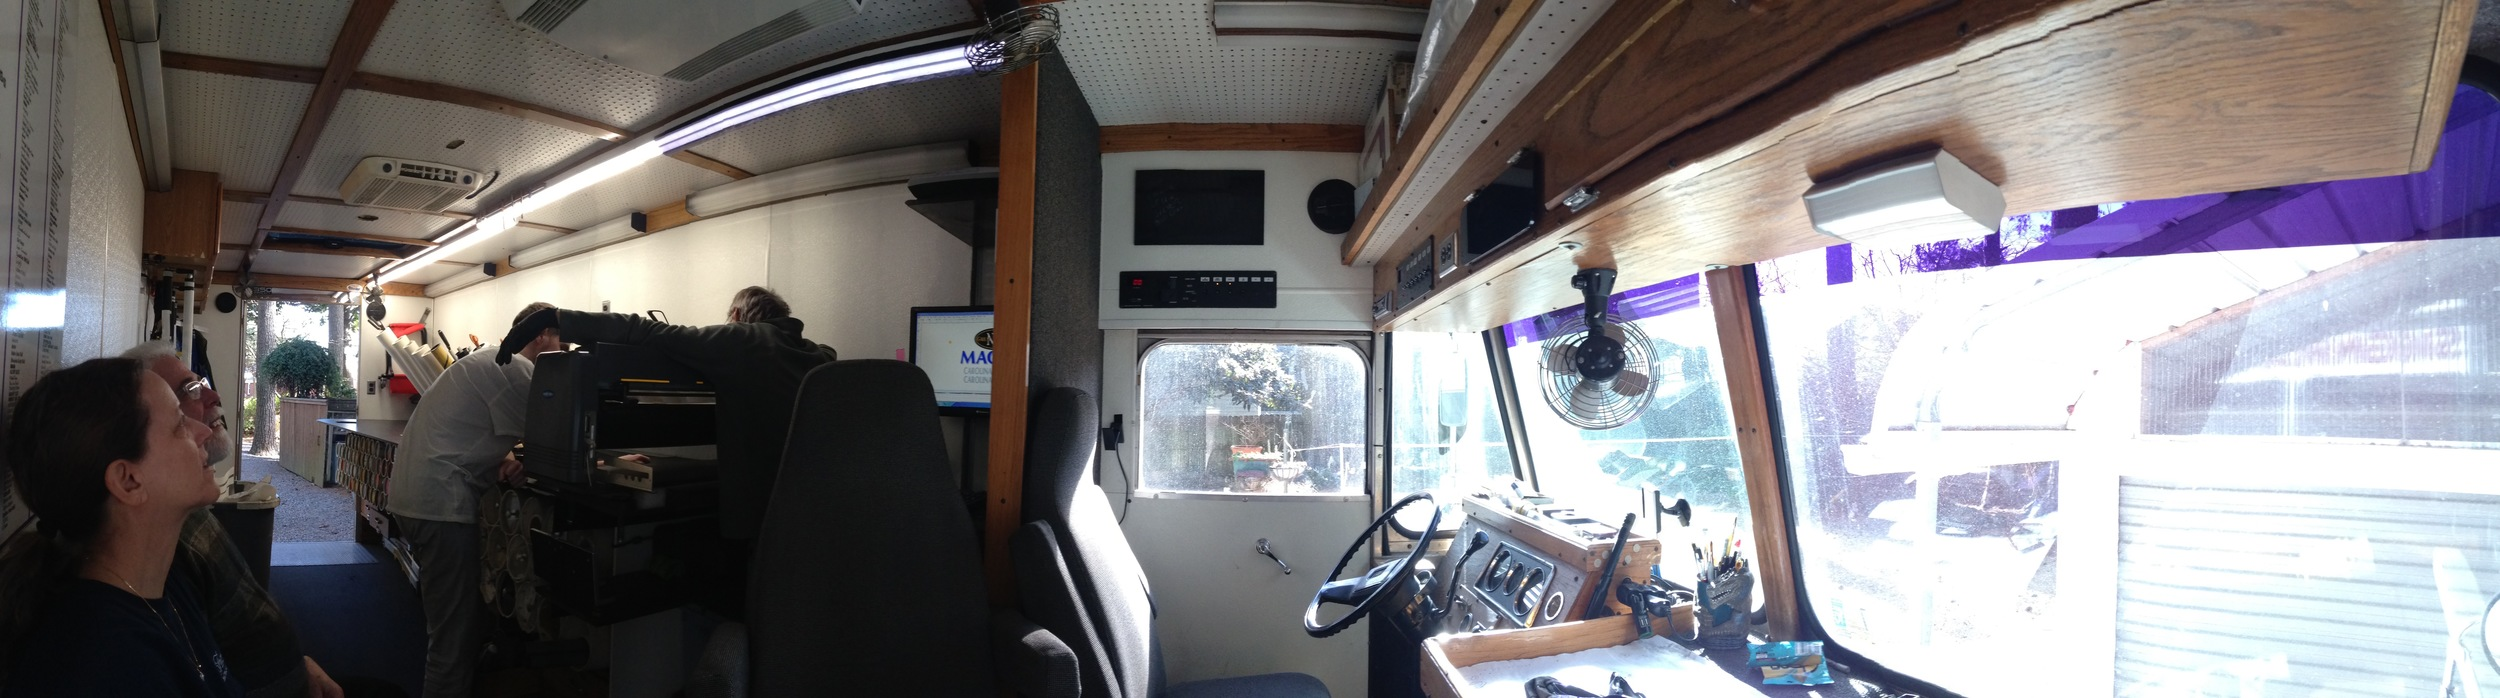 panorama of the whole van. the people on the left are sitting in little jump seats attached to the wall just inside the door. The 'reception area' for clients, if you will.